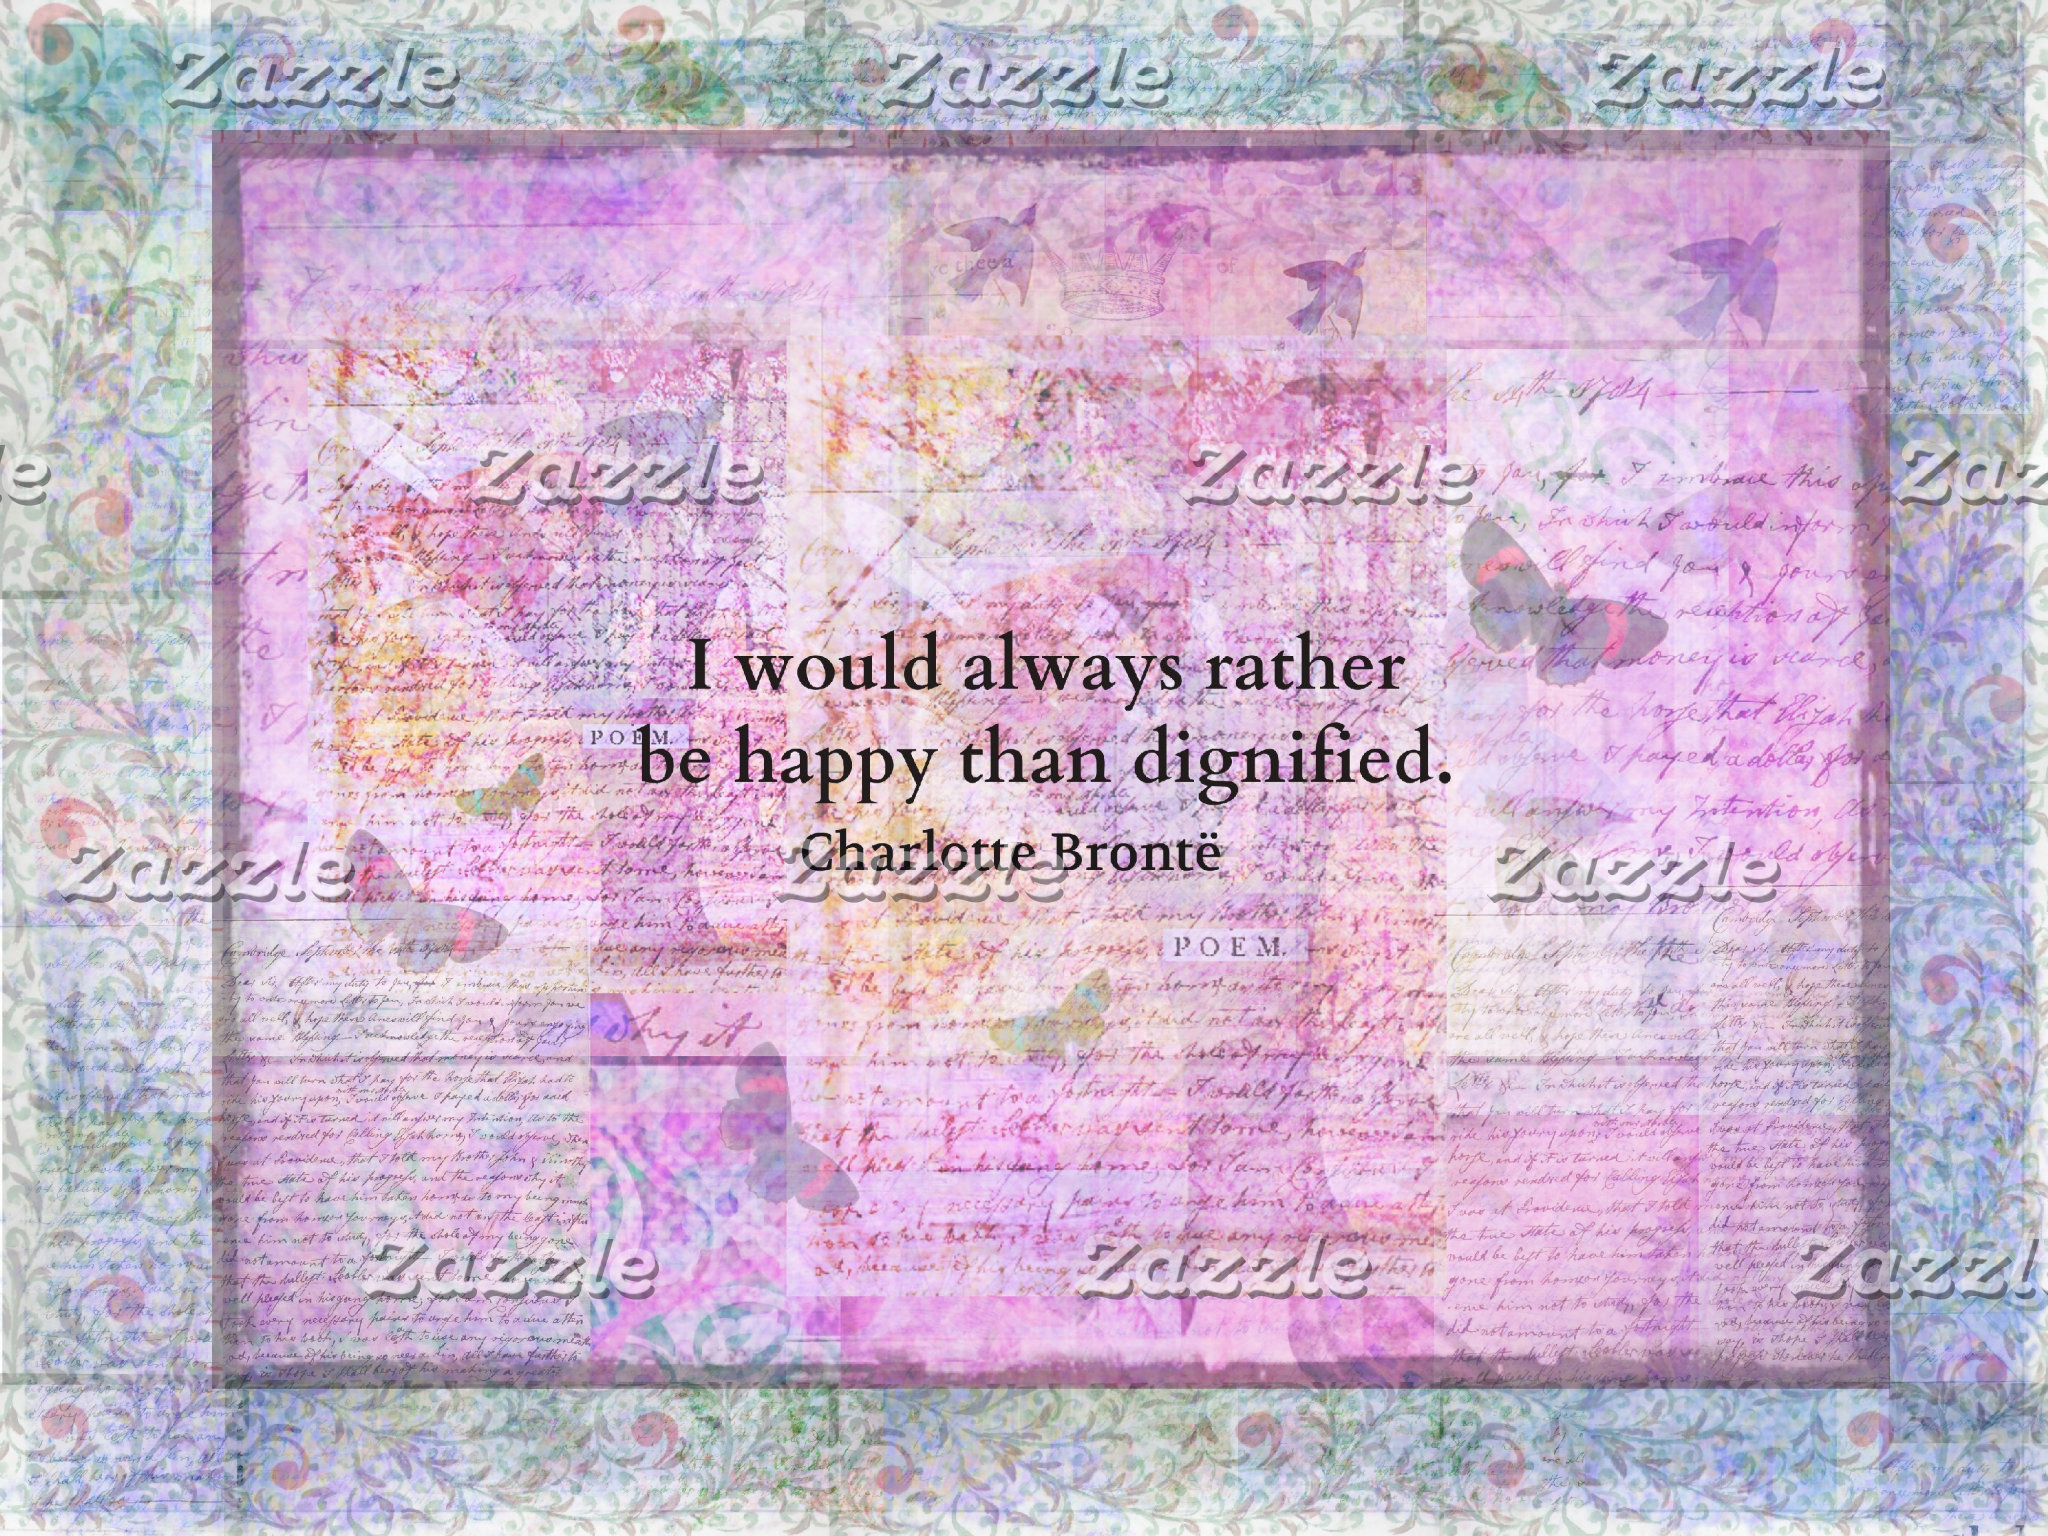 I would always rather be happy than dignified